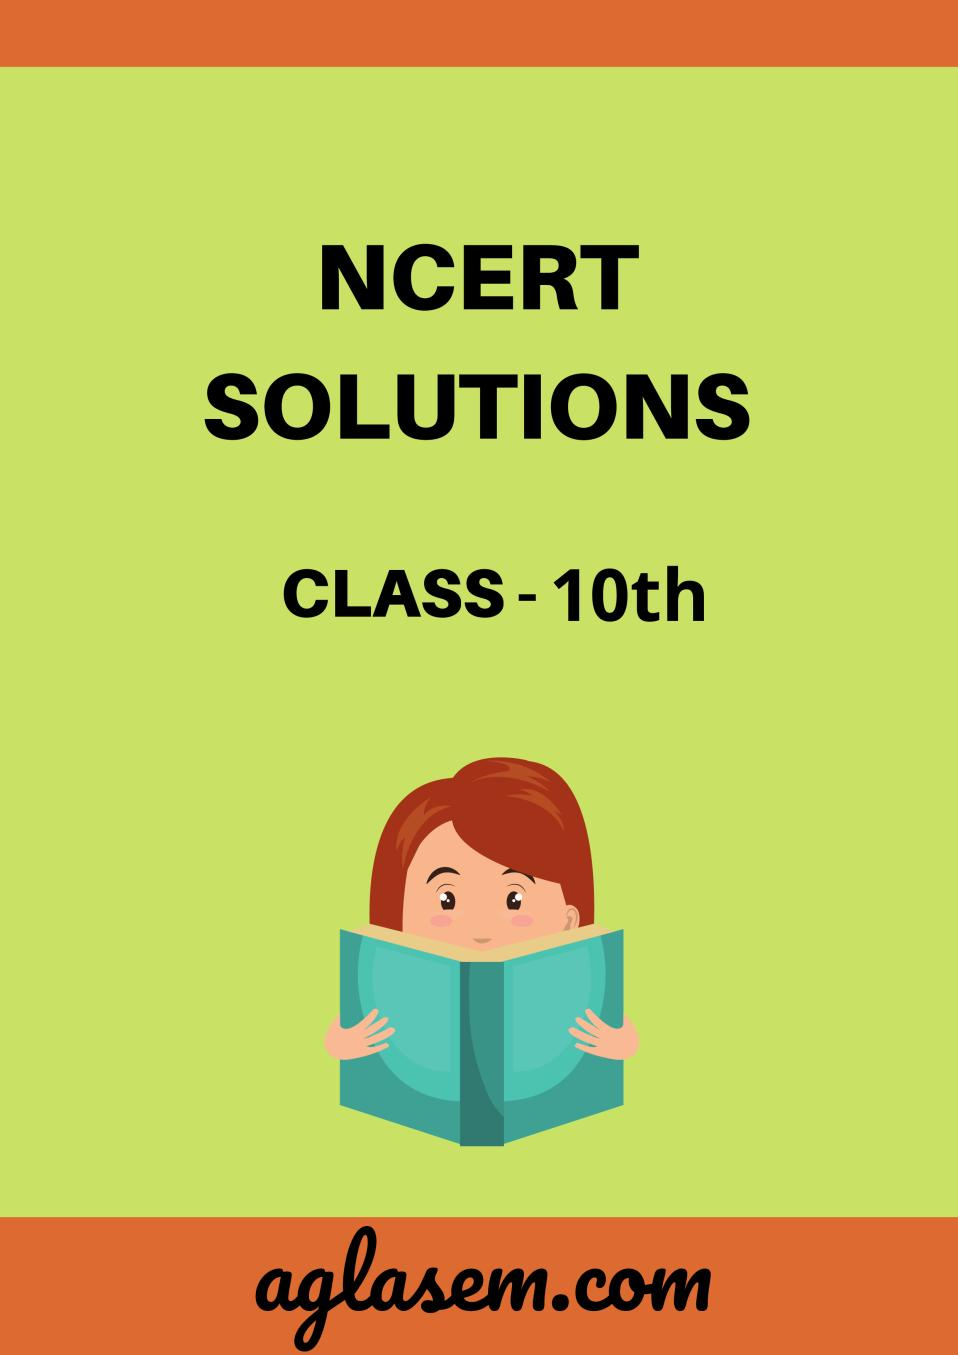 NCERT Solutions for Class 10 Social Science Civics Chapter 5 Popular Struggles and Movements